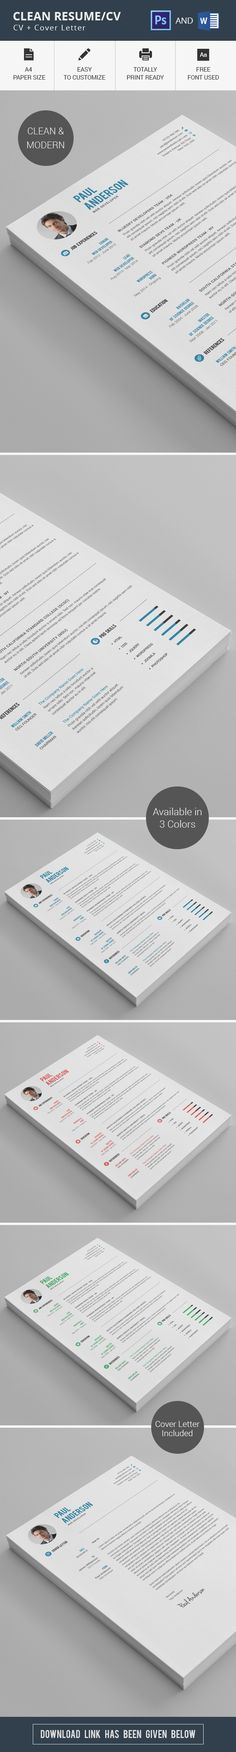 Resume CV - #Resumes #Stationery Download here   - clean resume format